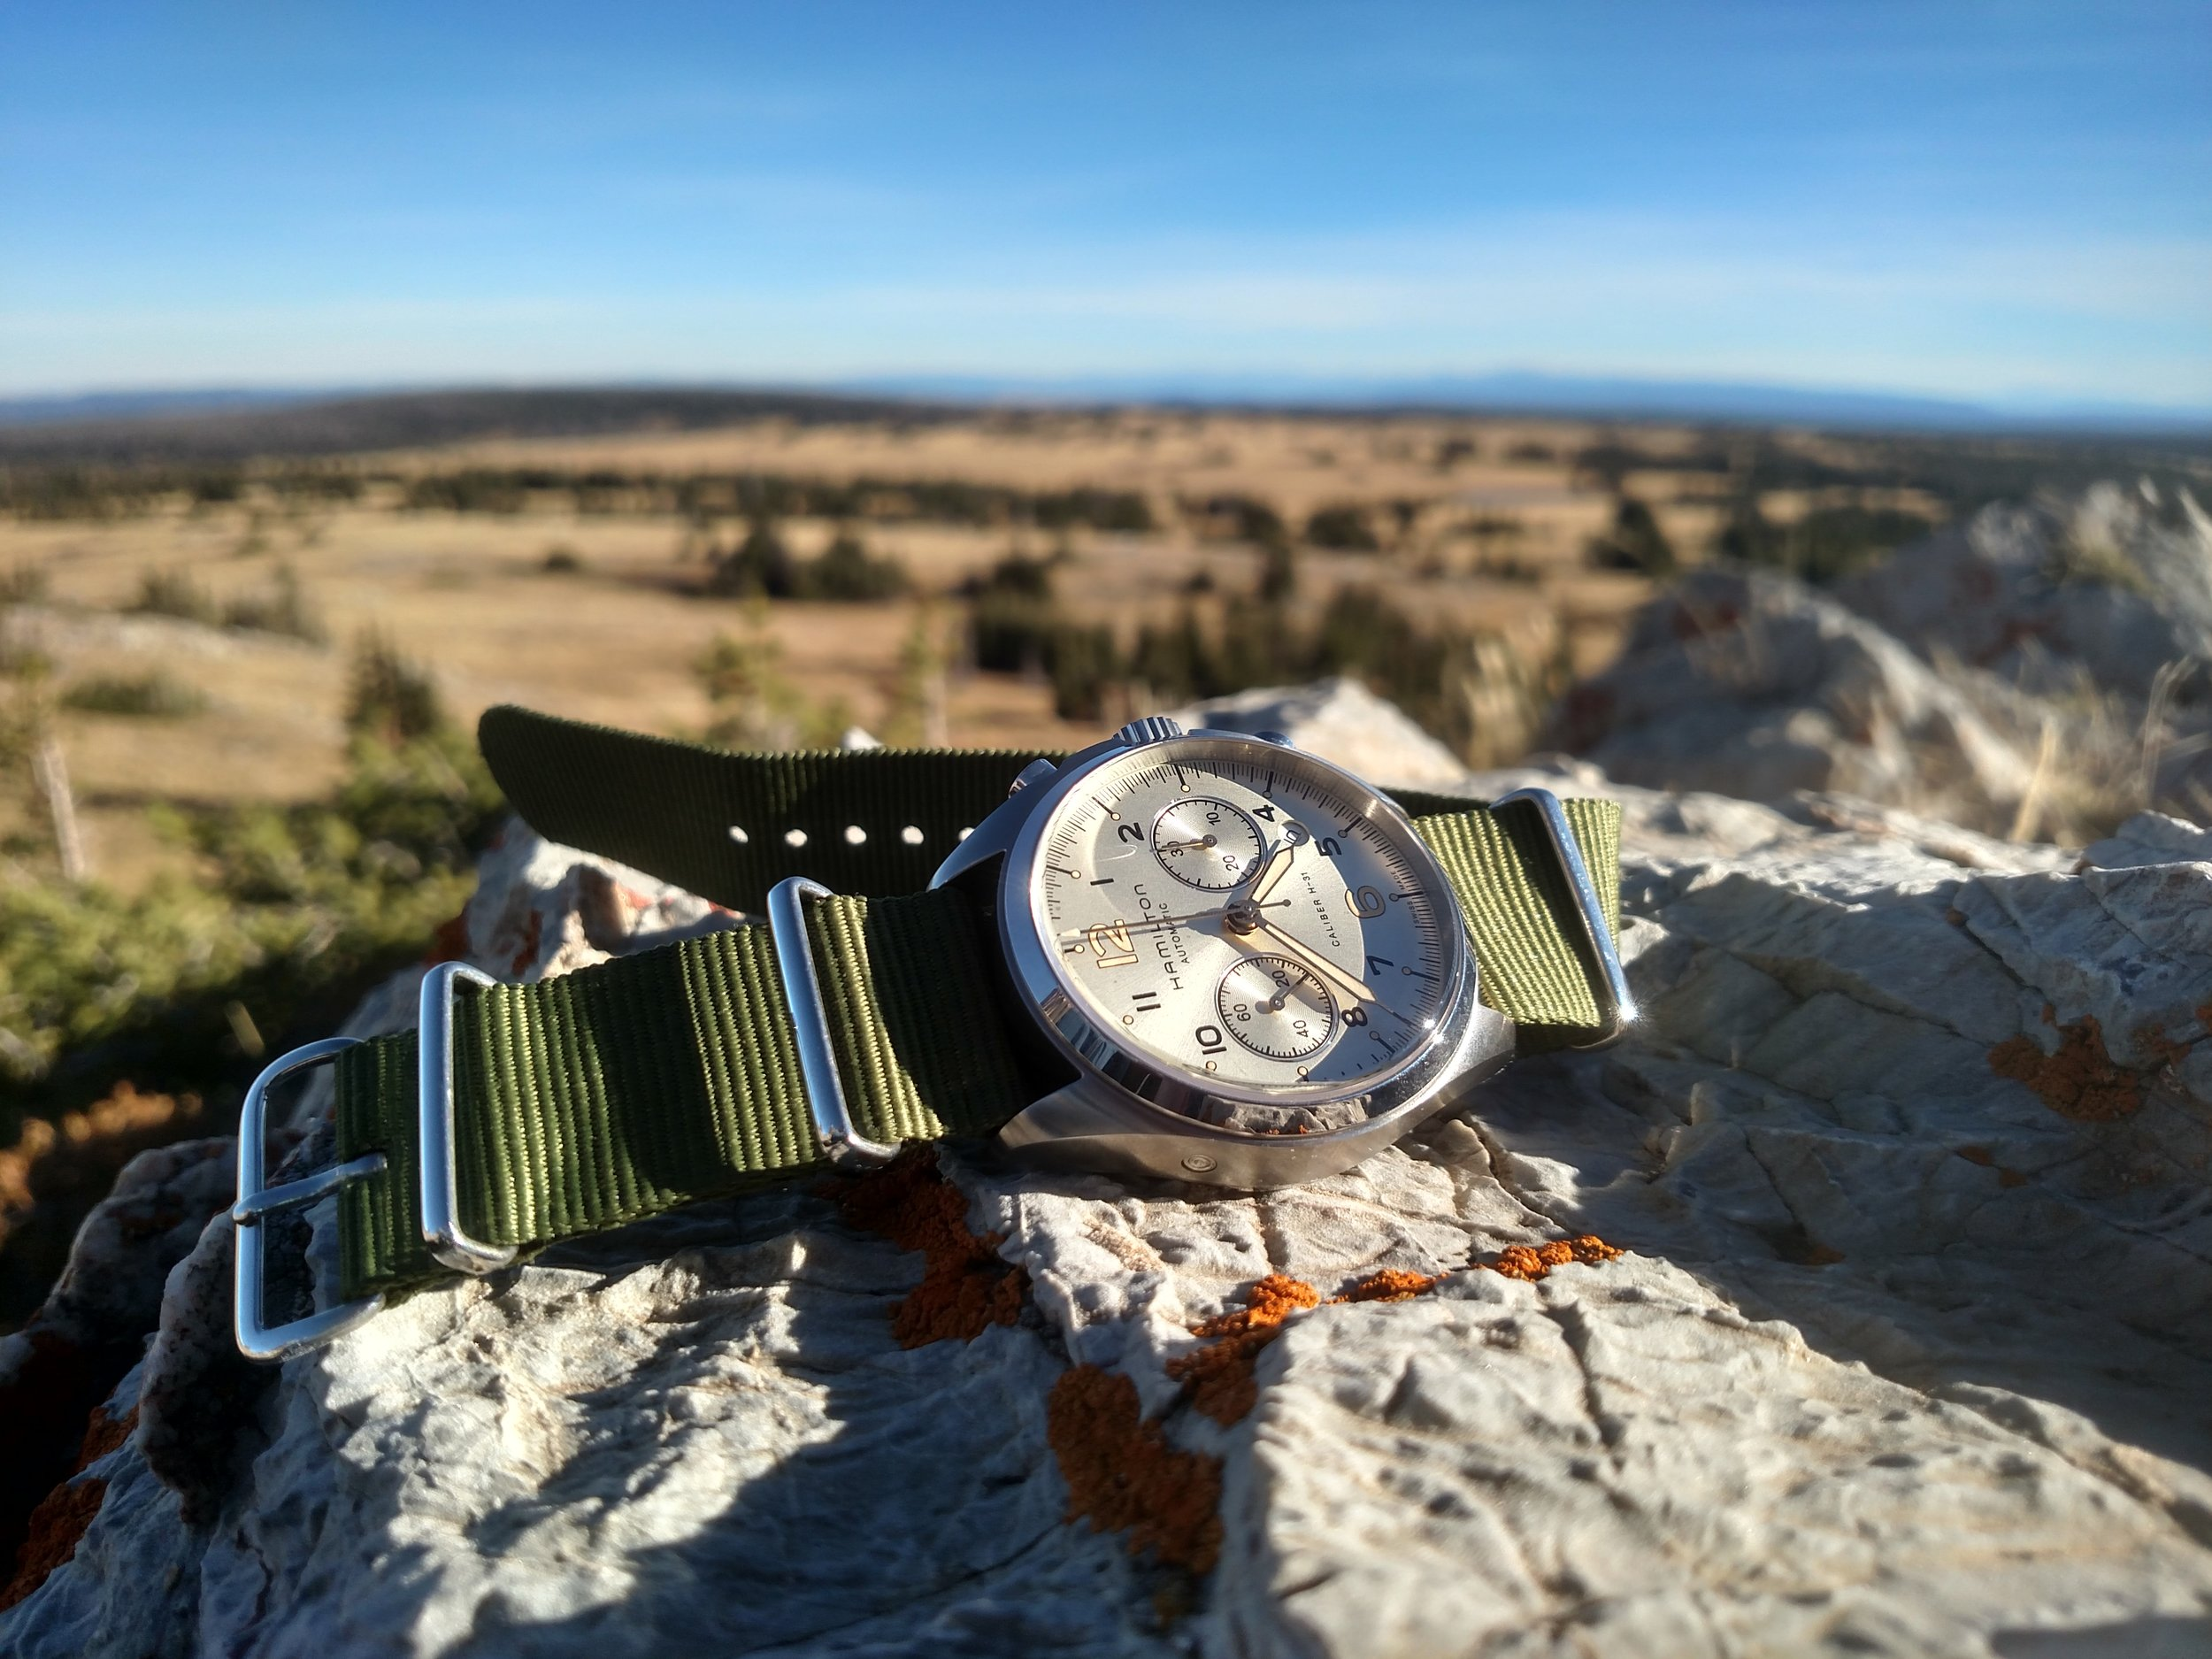 Hamilton Khaki Pilot Pioneer looking out over Medicine Bow National Forest  Near Centennial, Wyoming